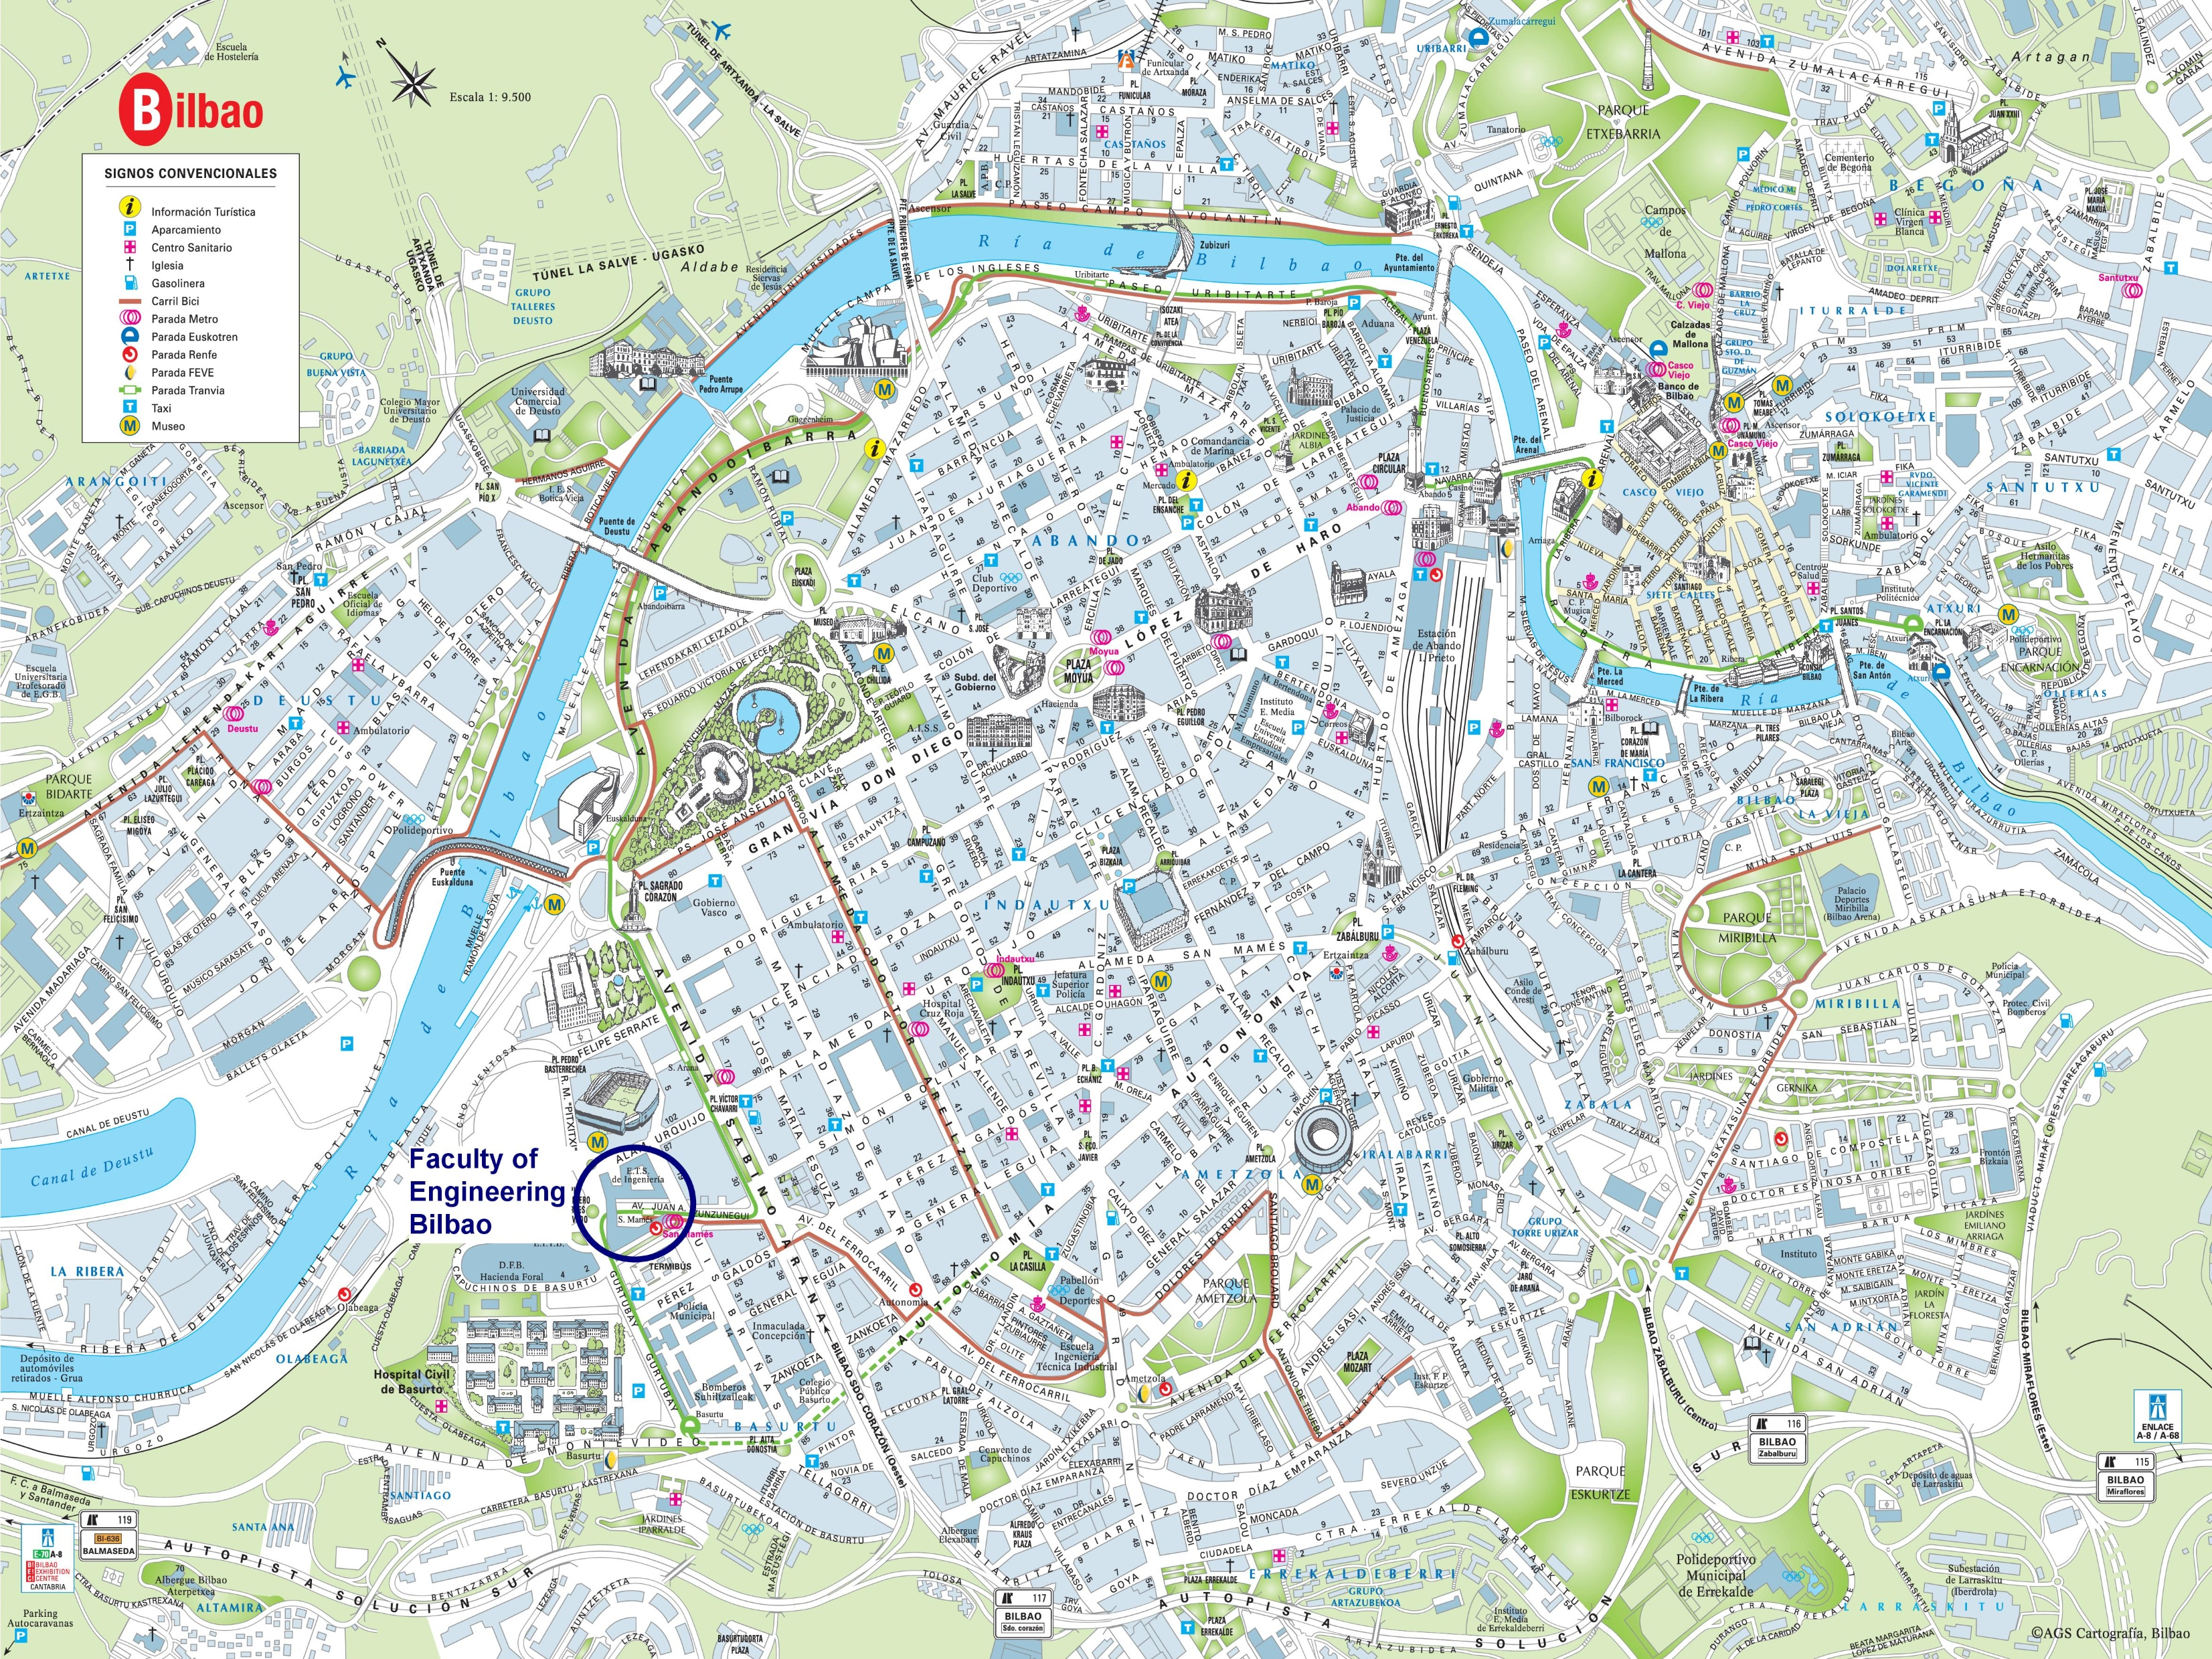 Bilbao city center map